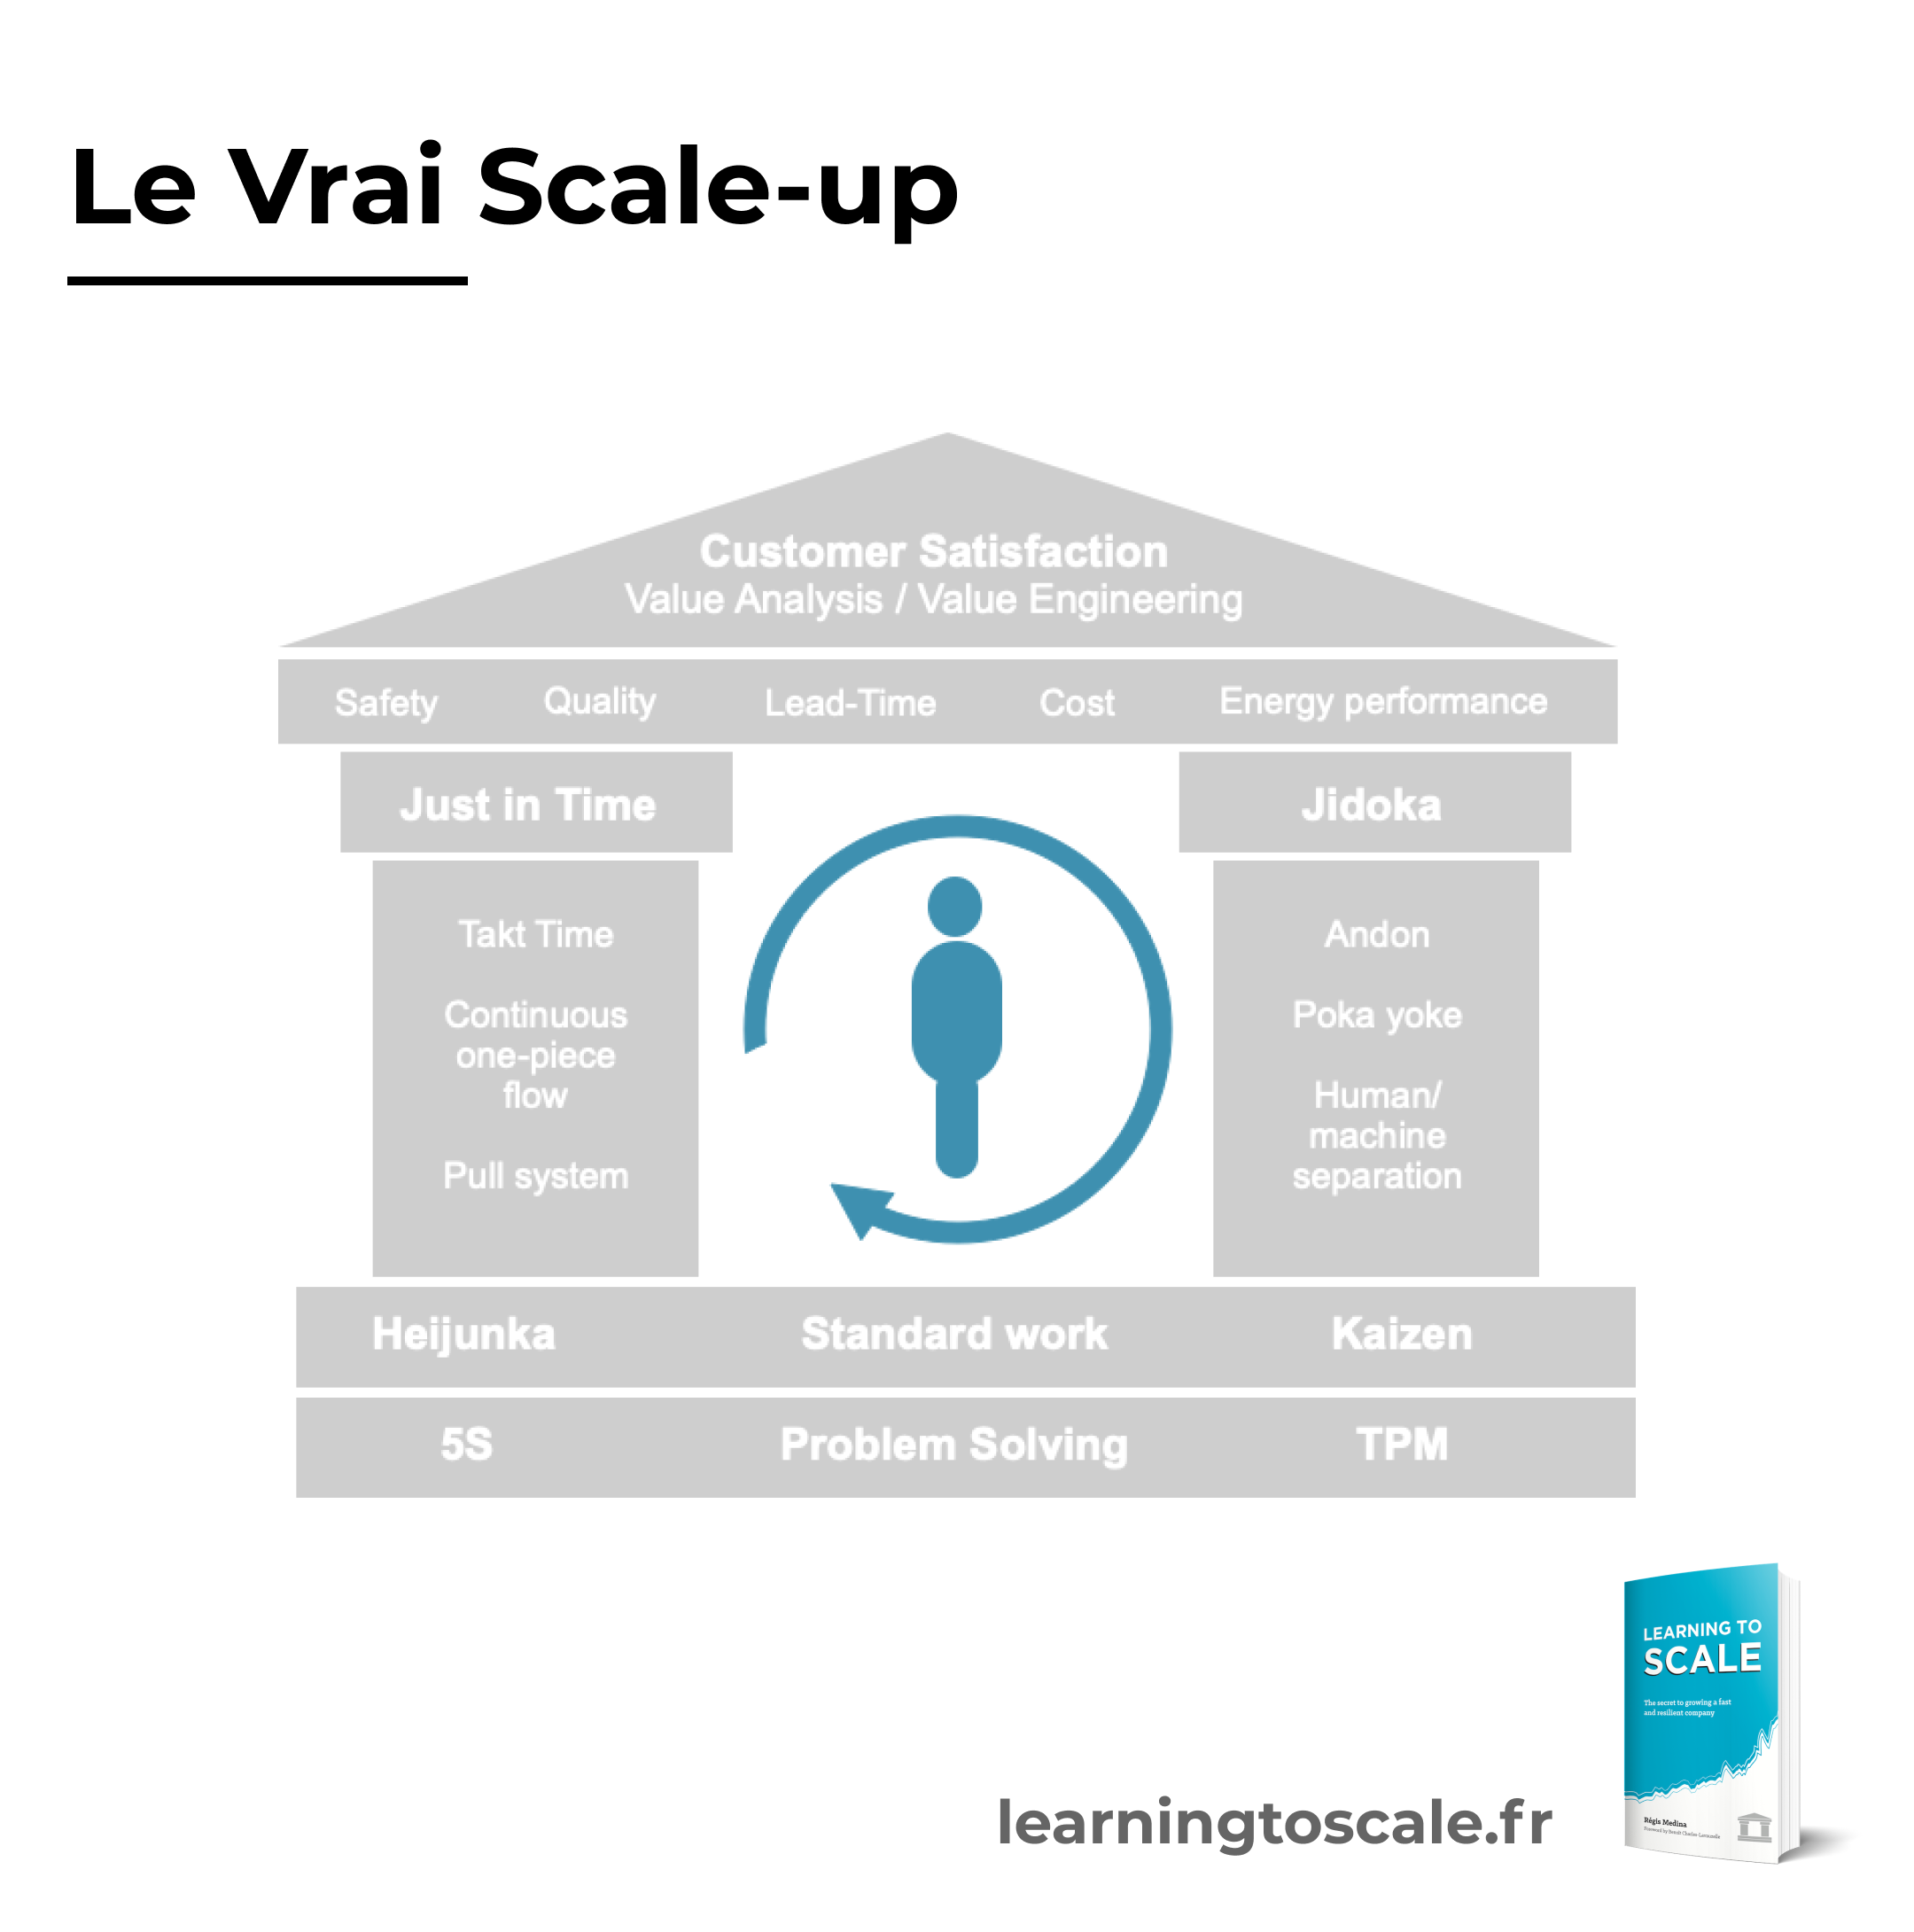 Le vrai scale-up